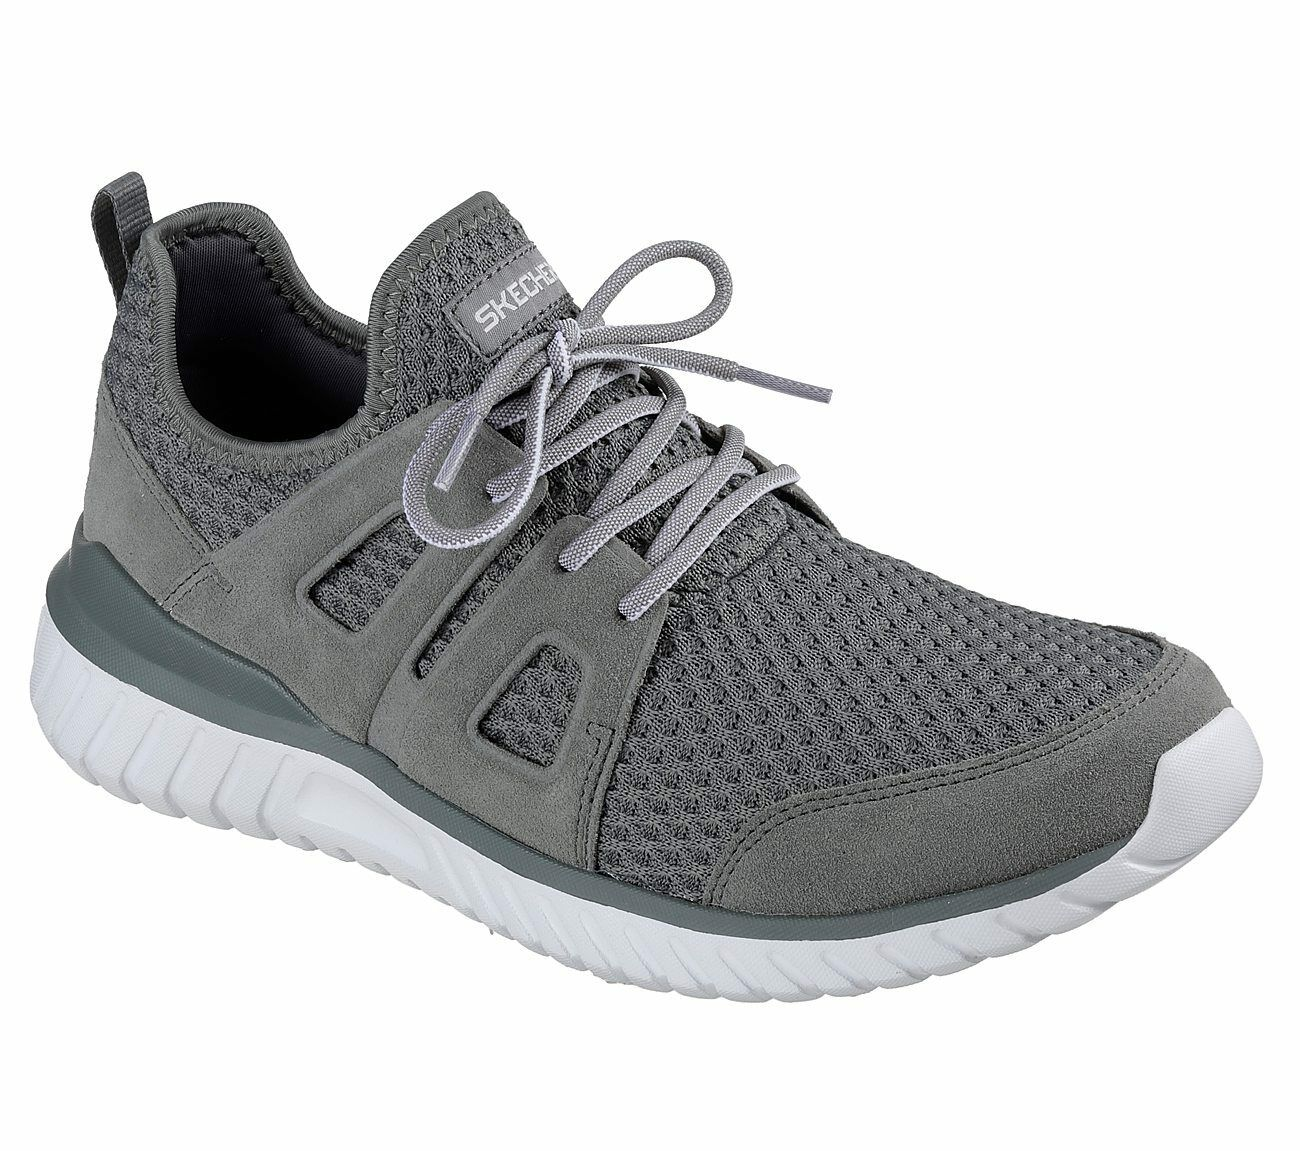 Skechers Rough Cut Herren Turnschuhe grau